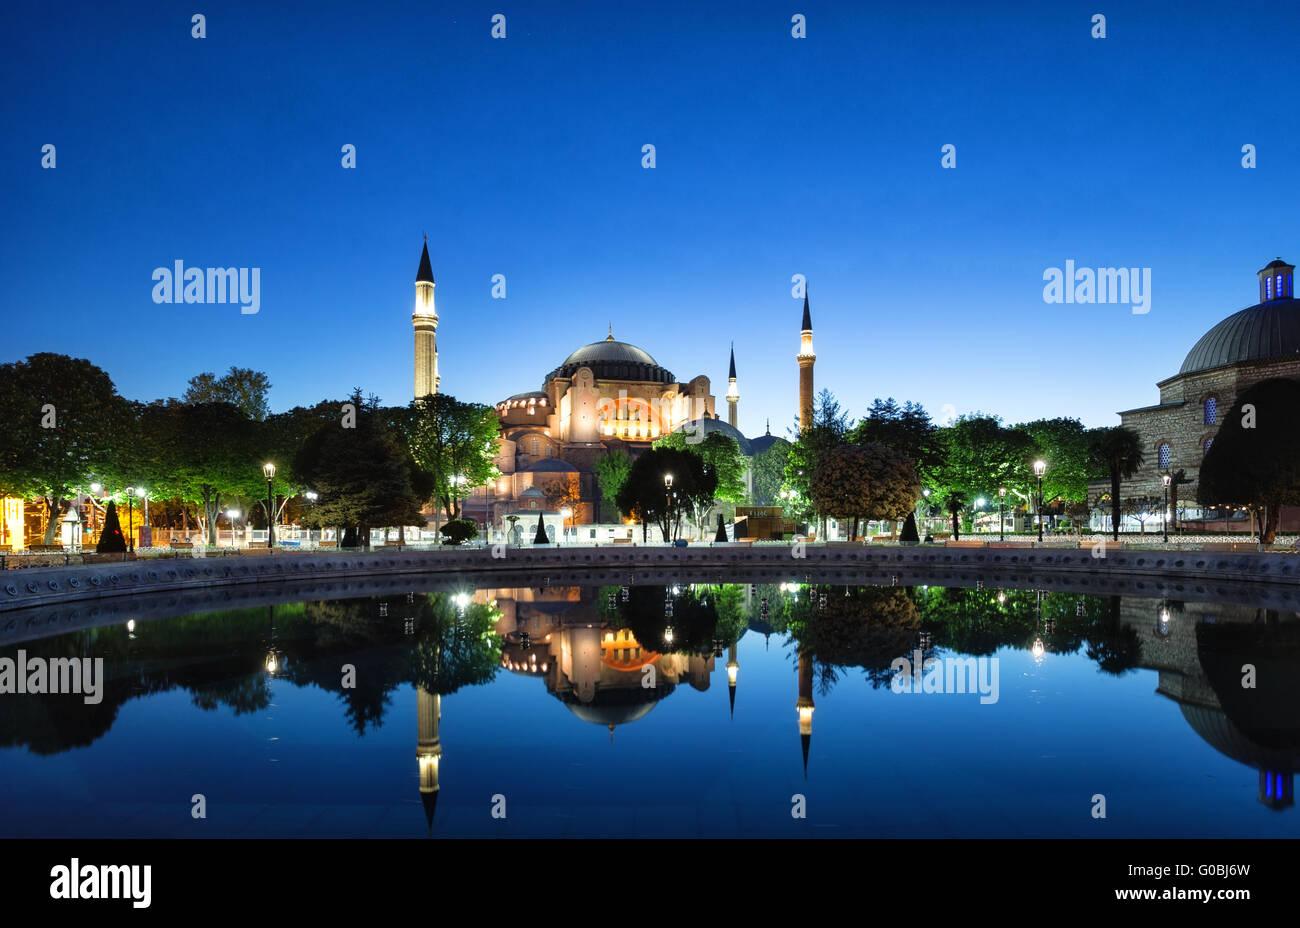 Hagia Sophia mosque with reflection. Istanbul, Turkey. - Stock Image